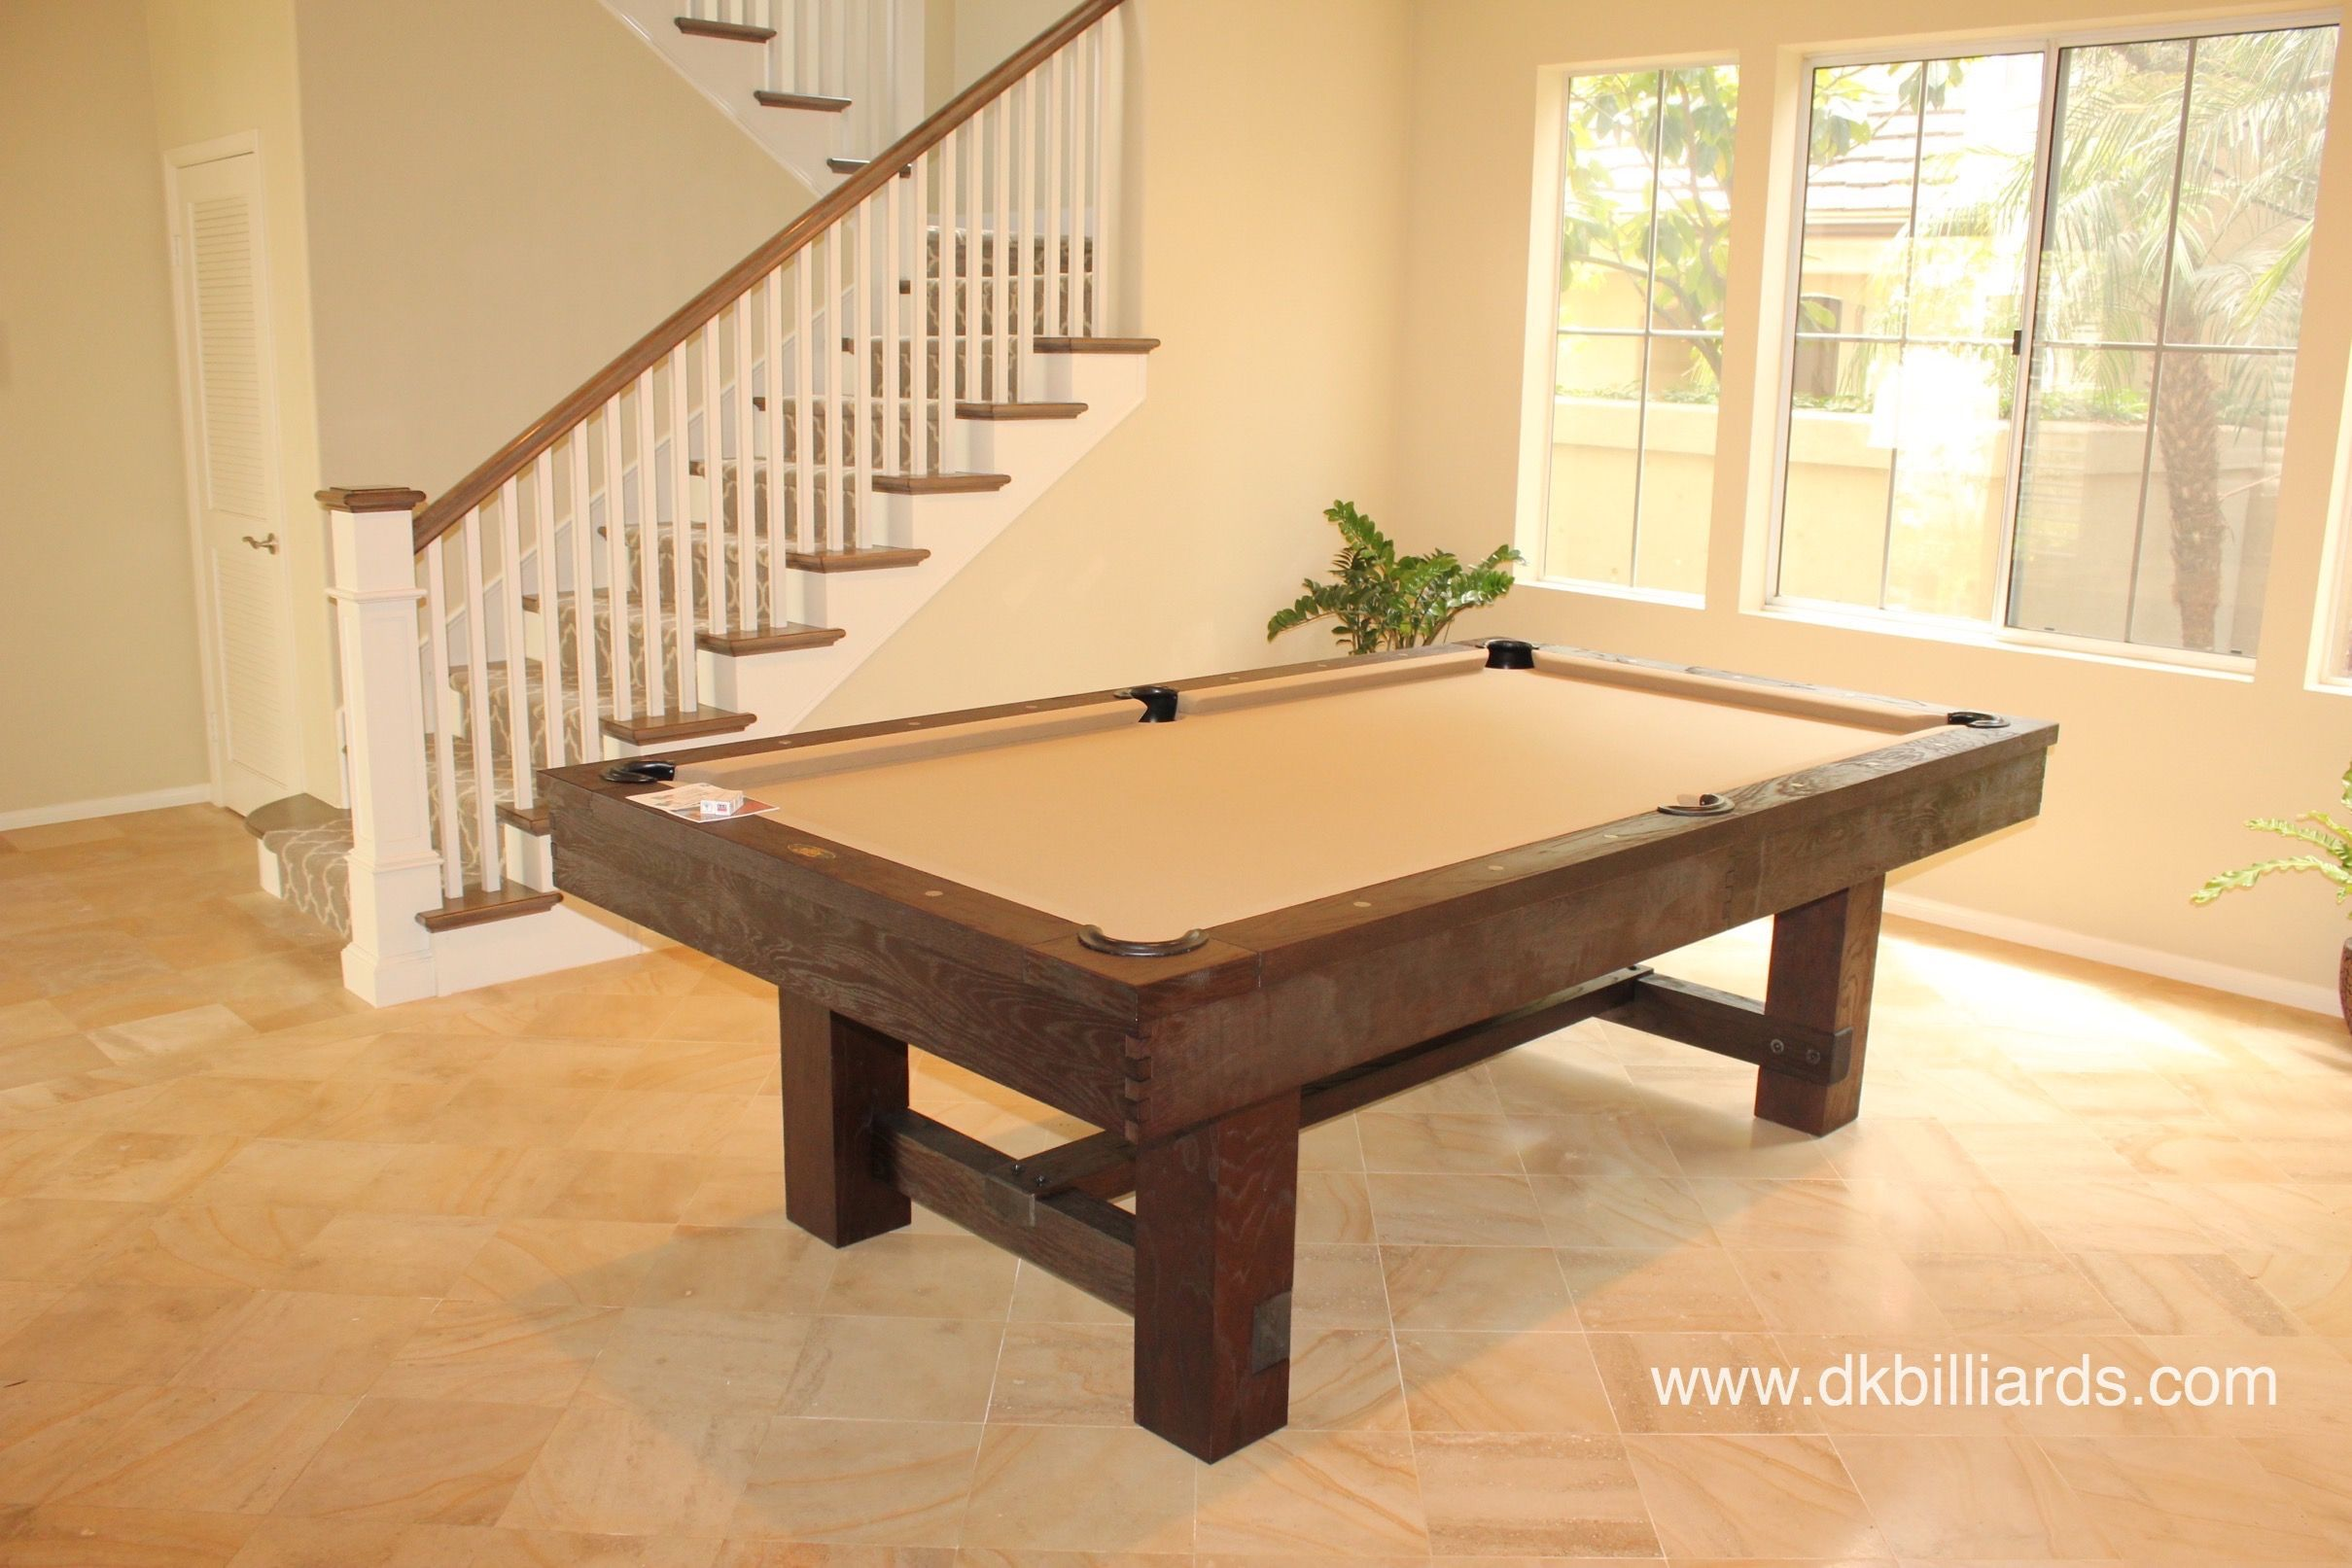 Rustic Pool Table For Beach House DK Billiards Pool Table Moving - Pool table movers delaware